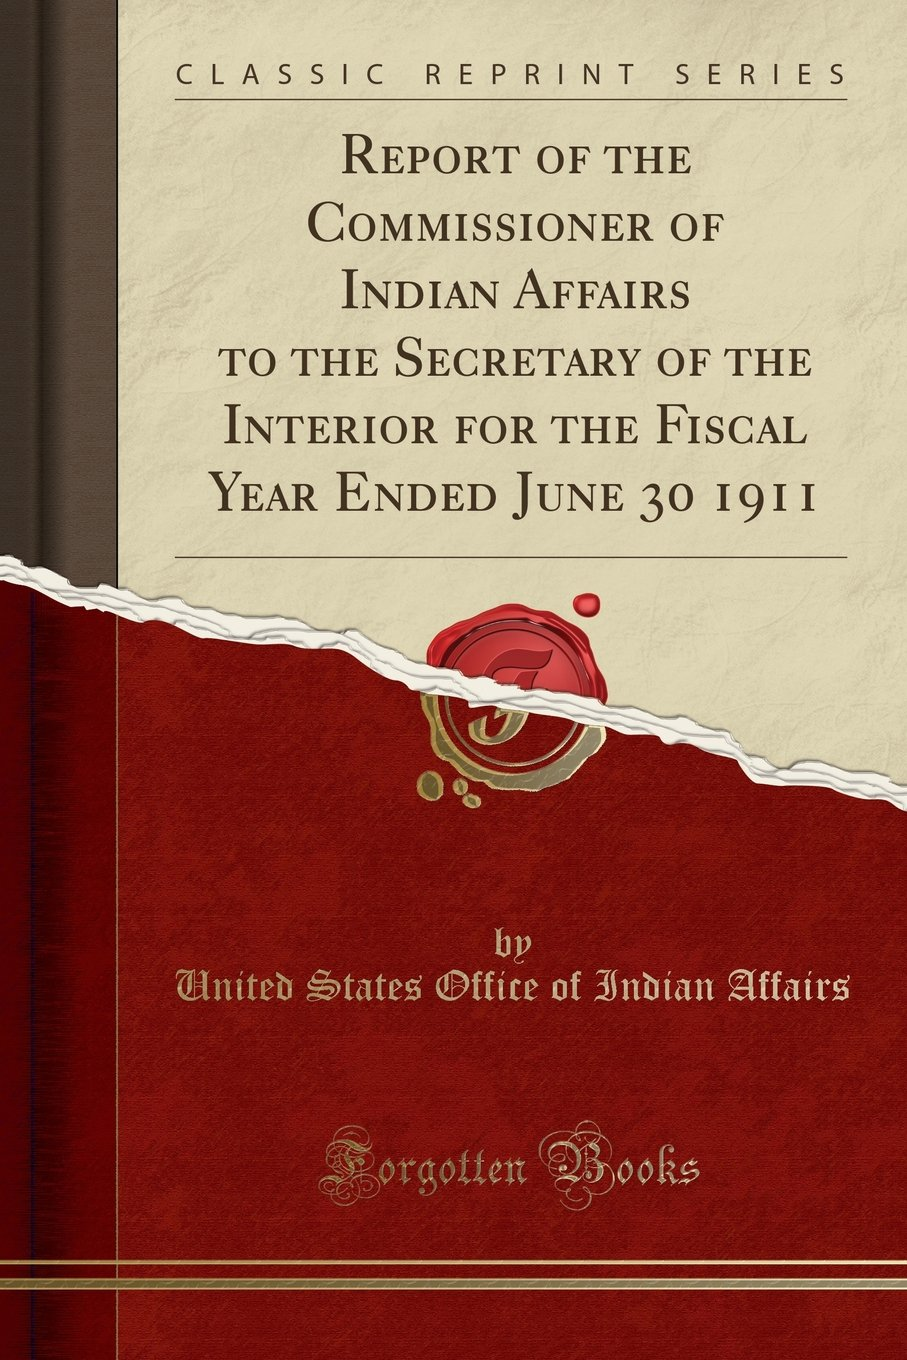 Report of the Commissioner of Indian Affairs to the Secretary of the Interior for the Fiscal Year Ended June 30 1911 (Classic Reprint) pdf epub